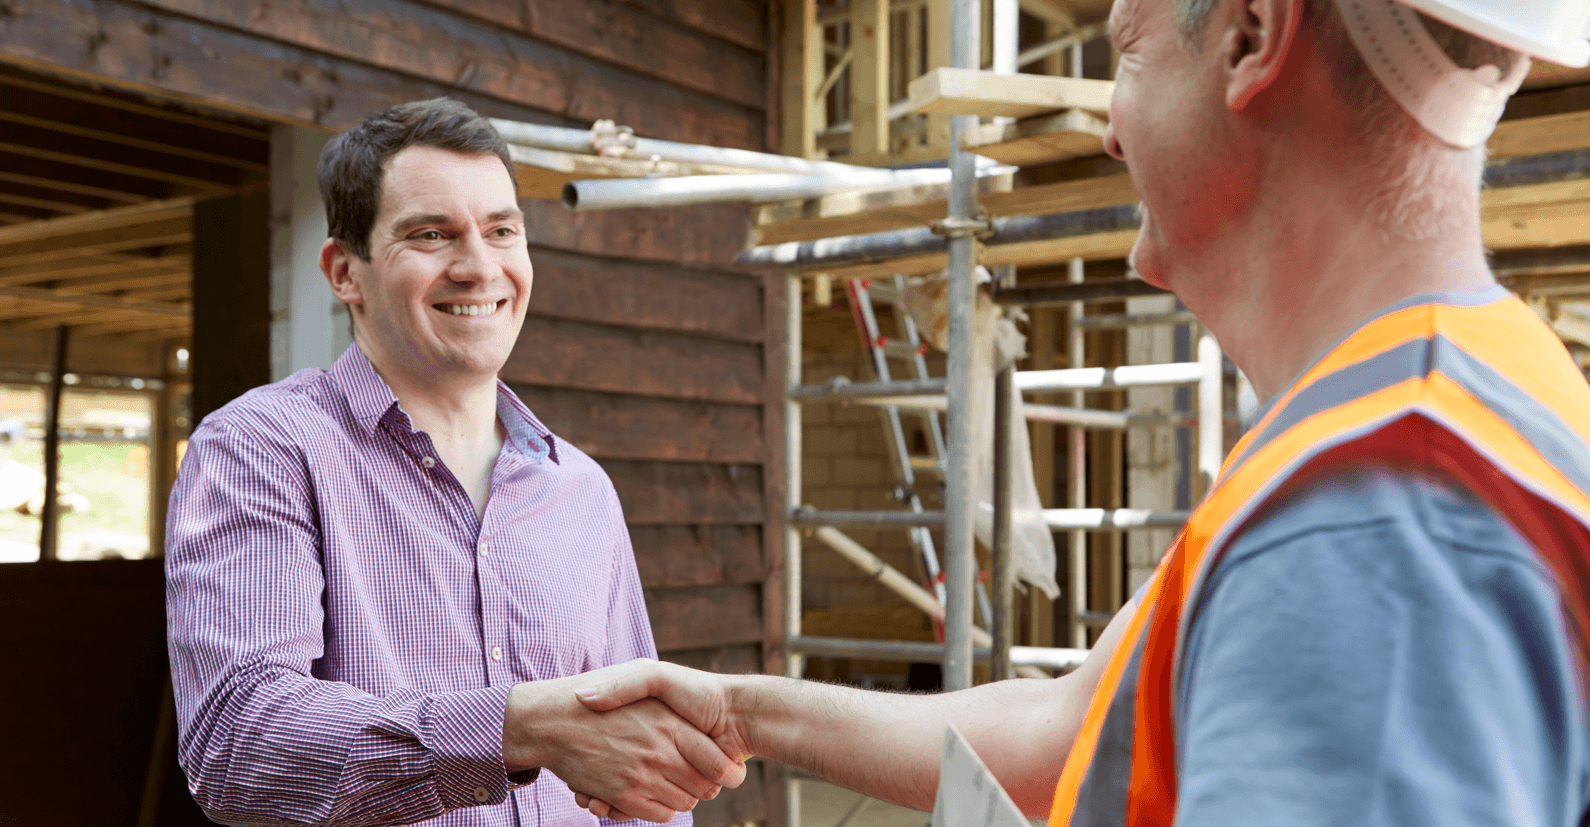 8 Questions to Ask a Builder Shaking Hands Image